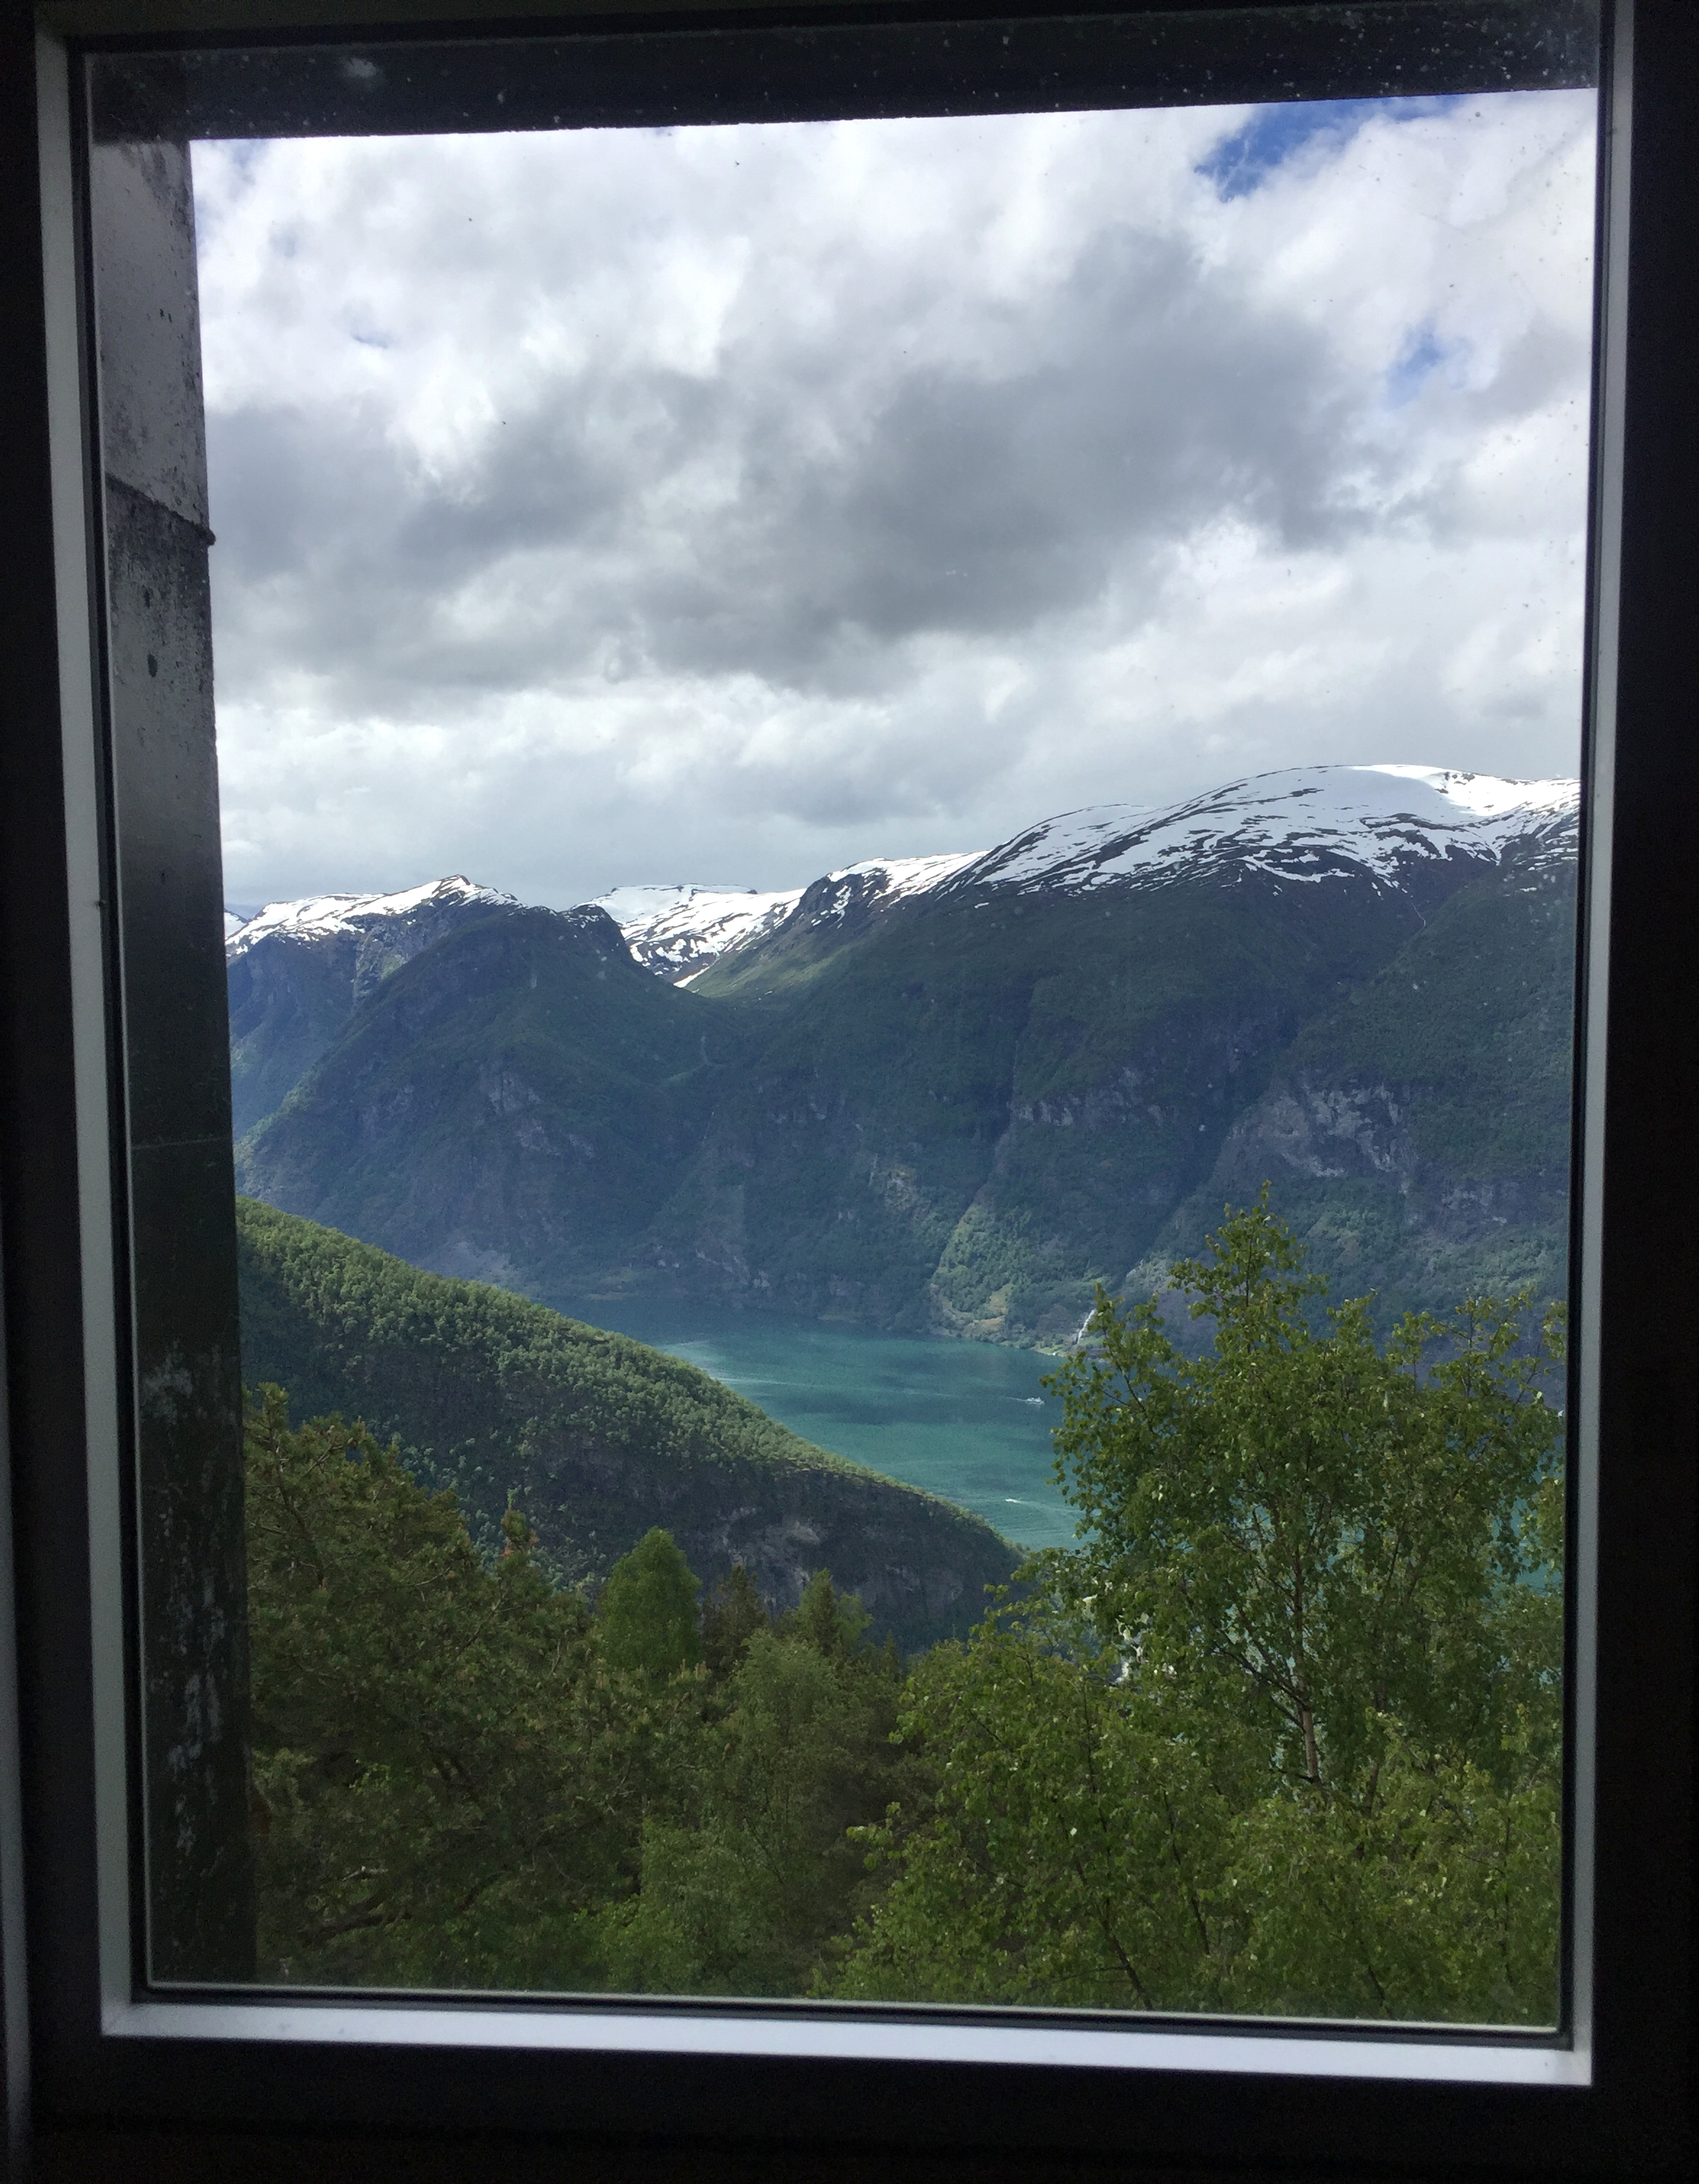 They took care to think about the experience throughout your whole visit, even the views from the bathroom were gorgeous!